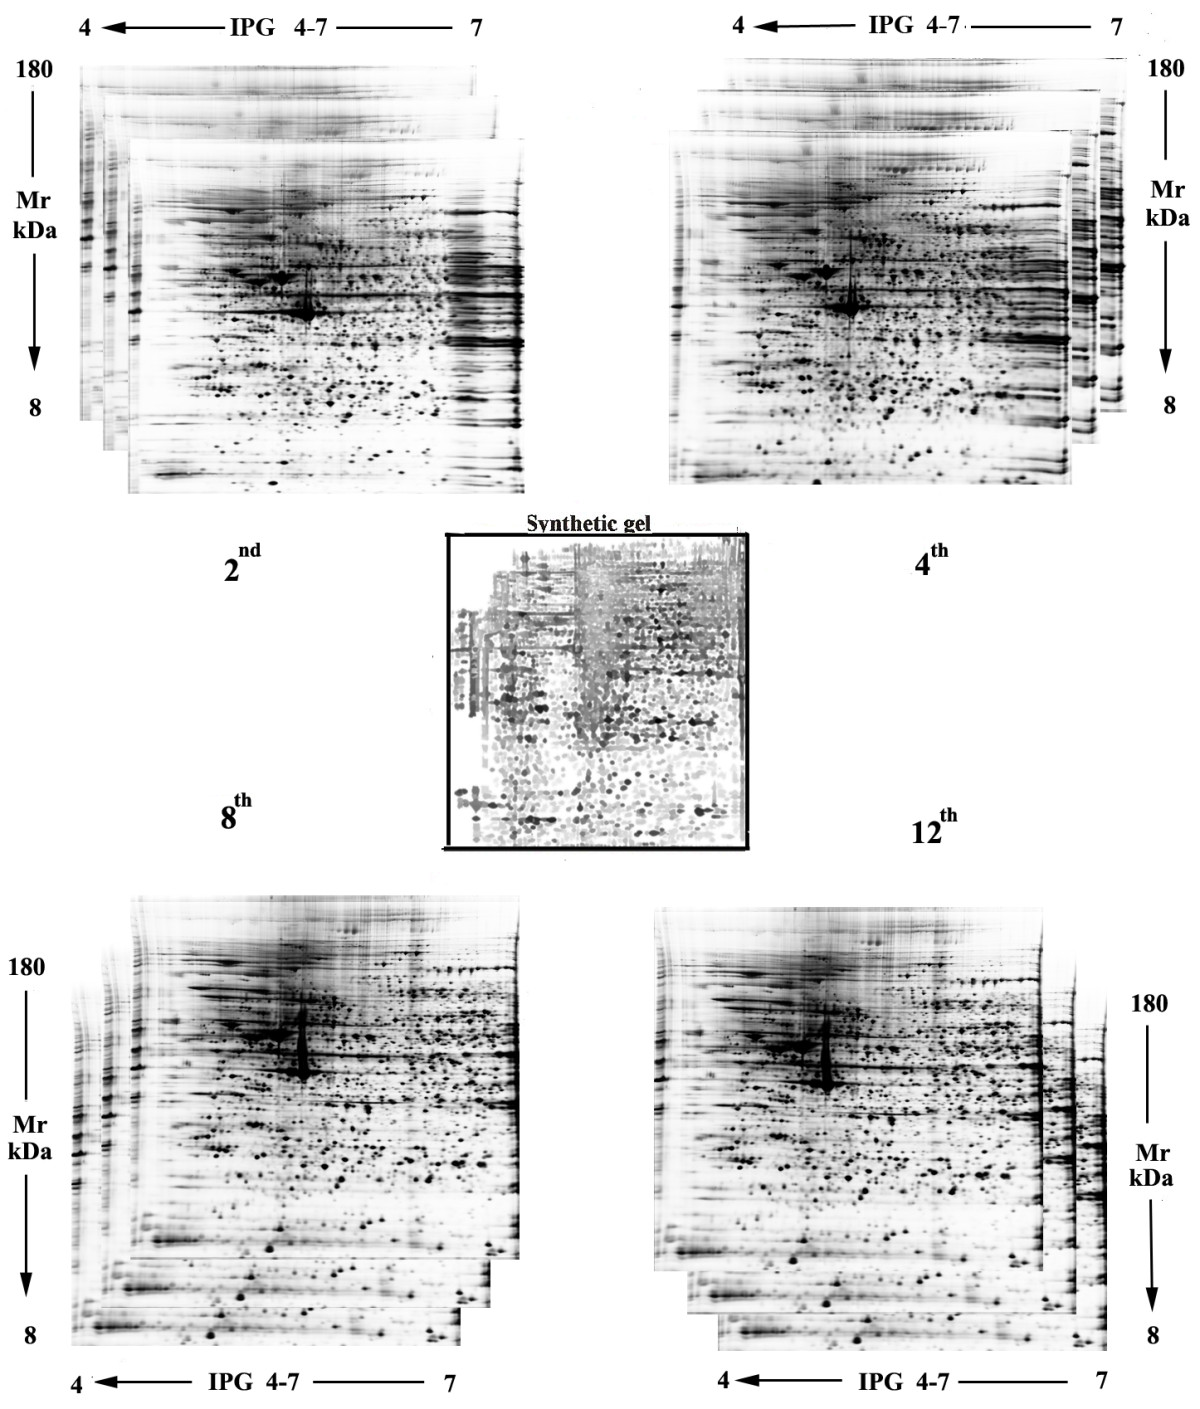 https://static-content.springer.com/image/art%3A10.1186%2F1477-5956-8-18/MediaObjects/12953_2009_Article_170_Fig3_HTML.jpg